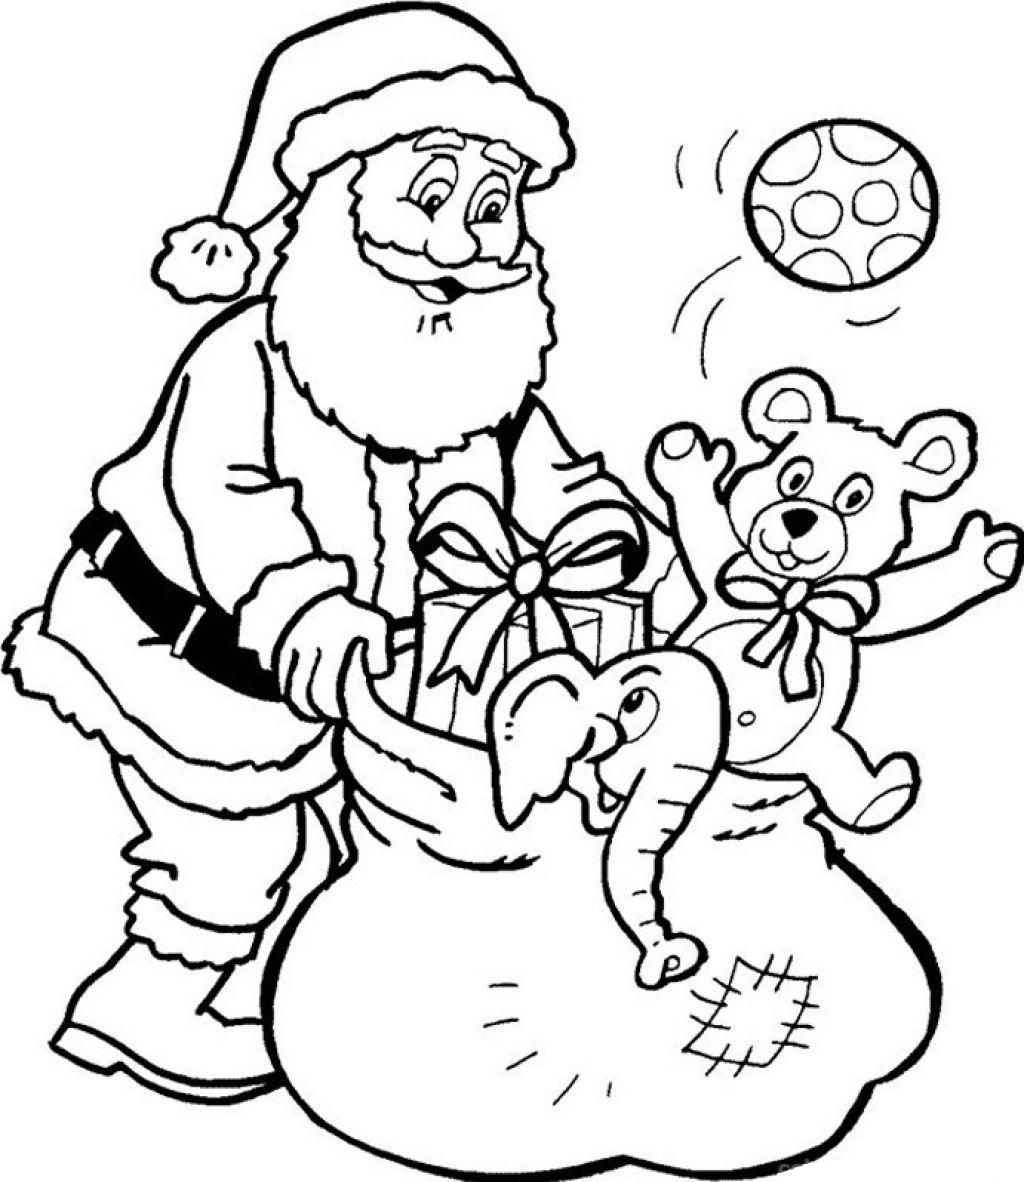 1024x1182 Appealing Coloring Santa Claus For Kids Printable Online Face Colo